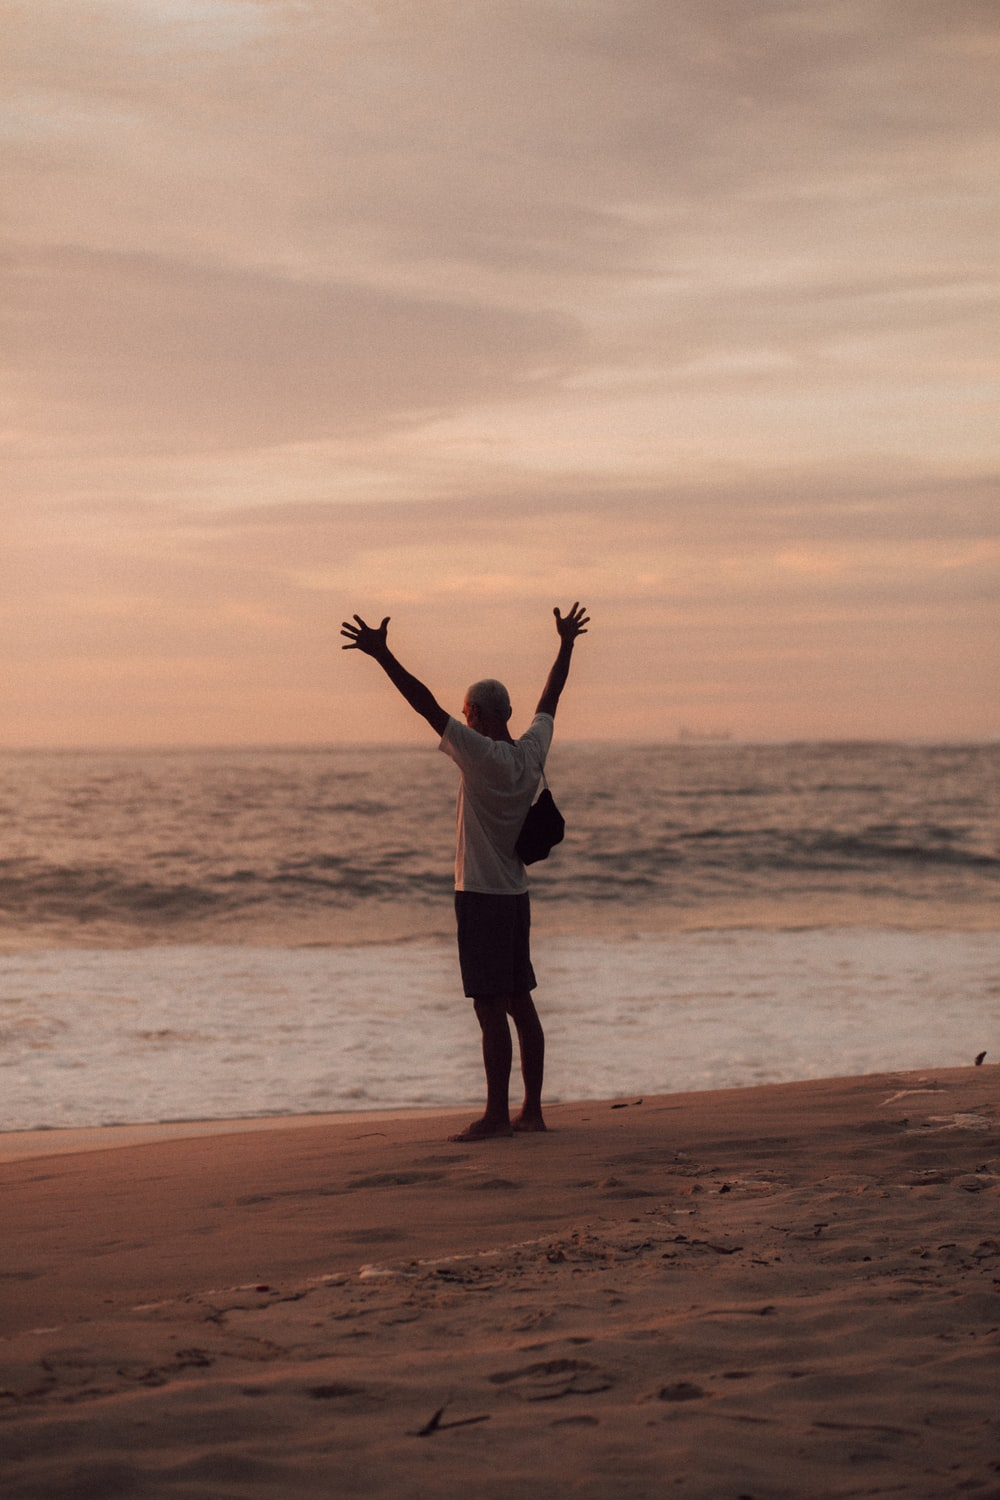 man in white shirt and black shorts standing on seashore during sunset